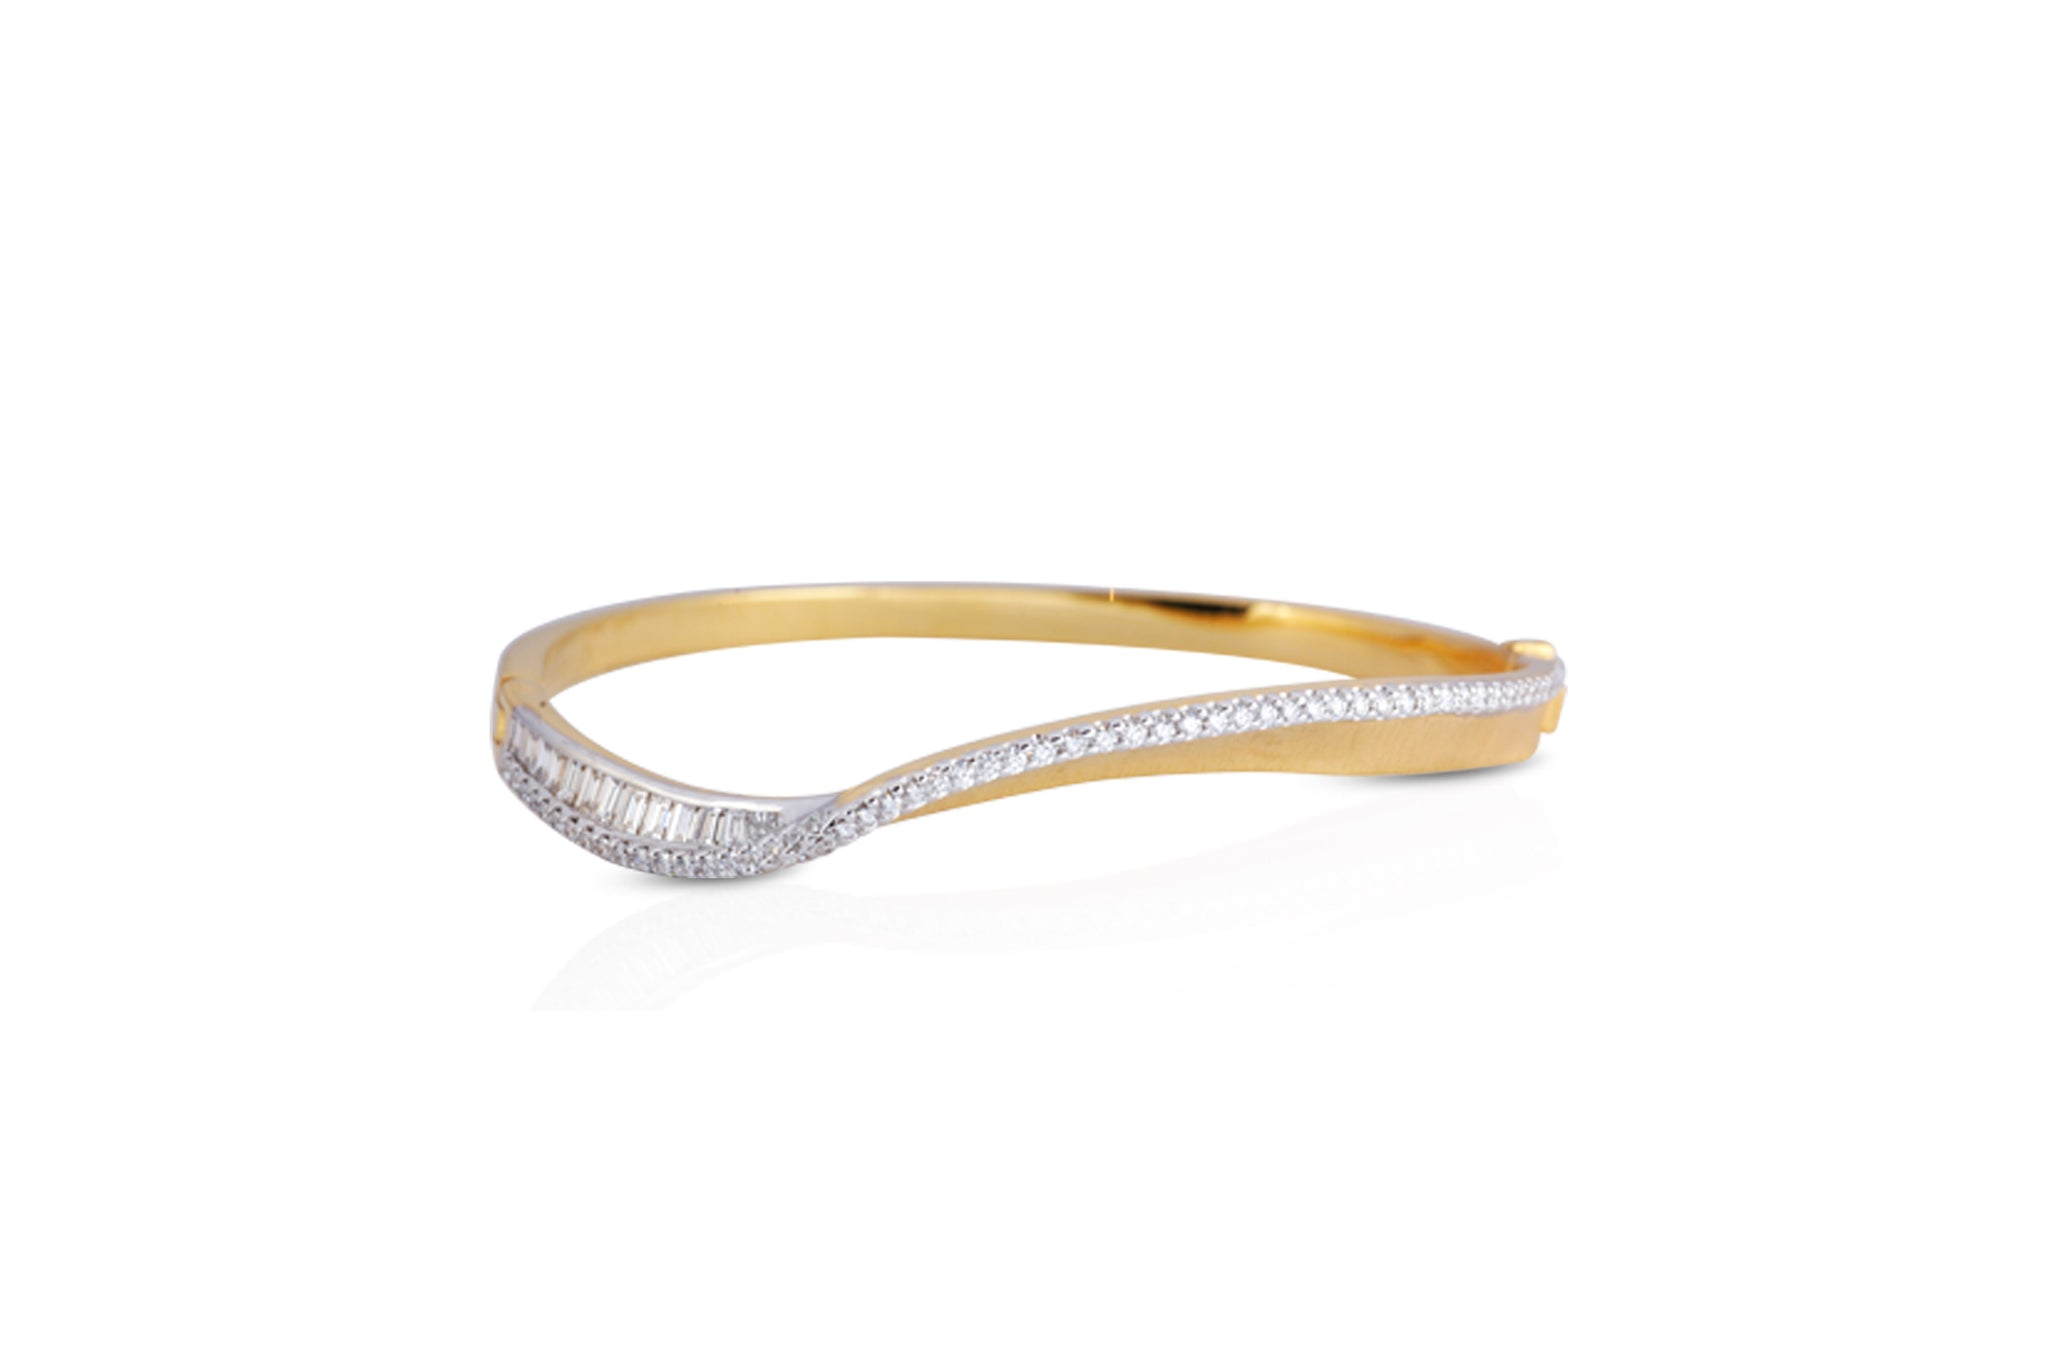 Talay Wave Twist Bangle in Brushed Gold